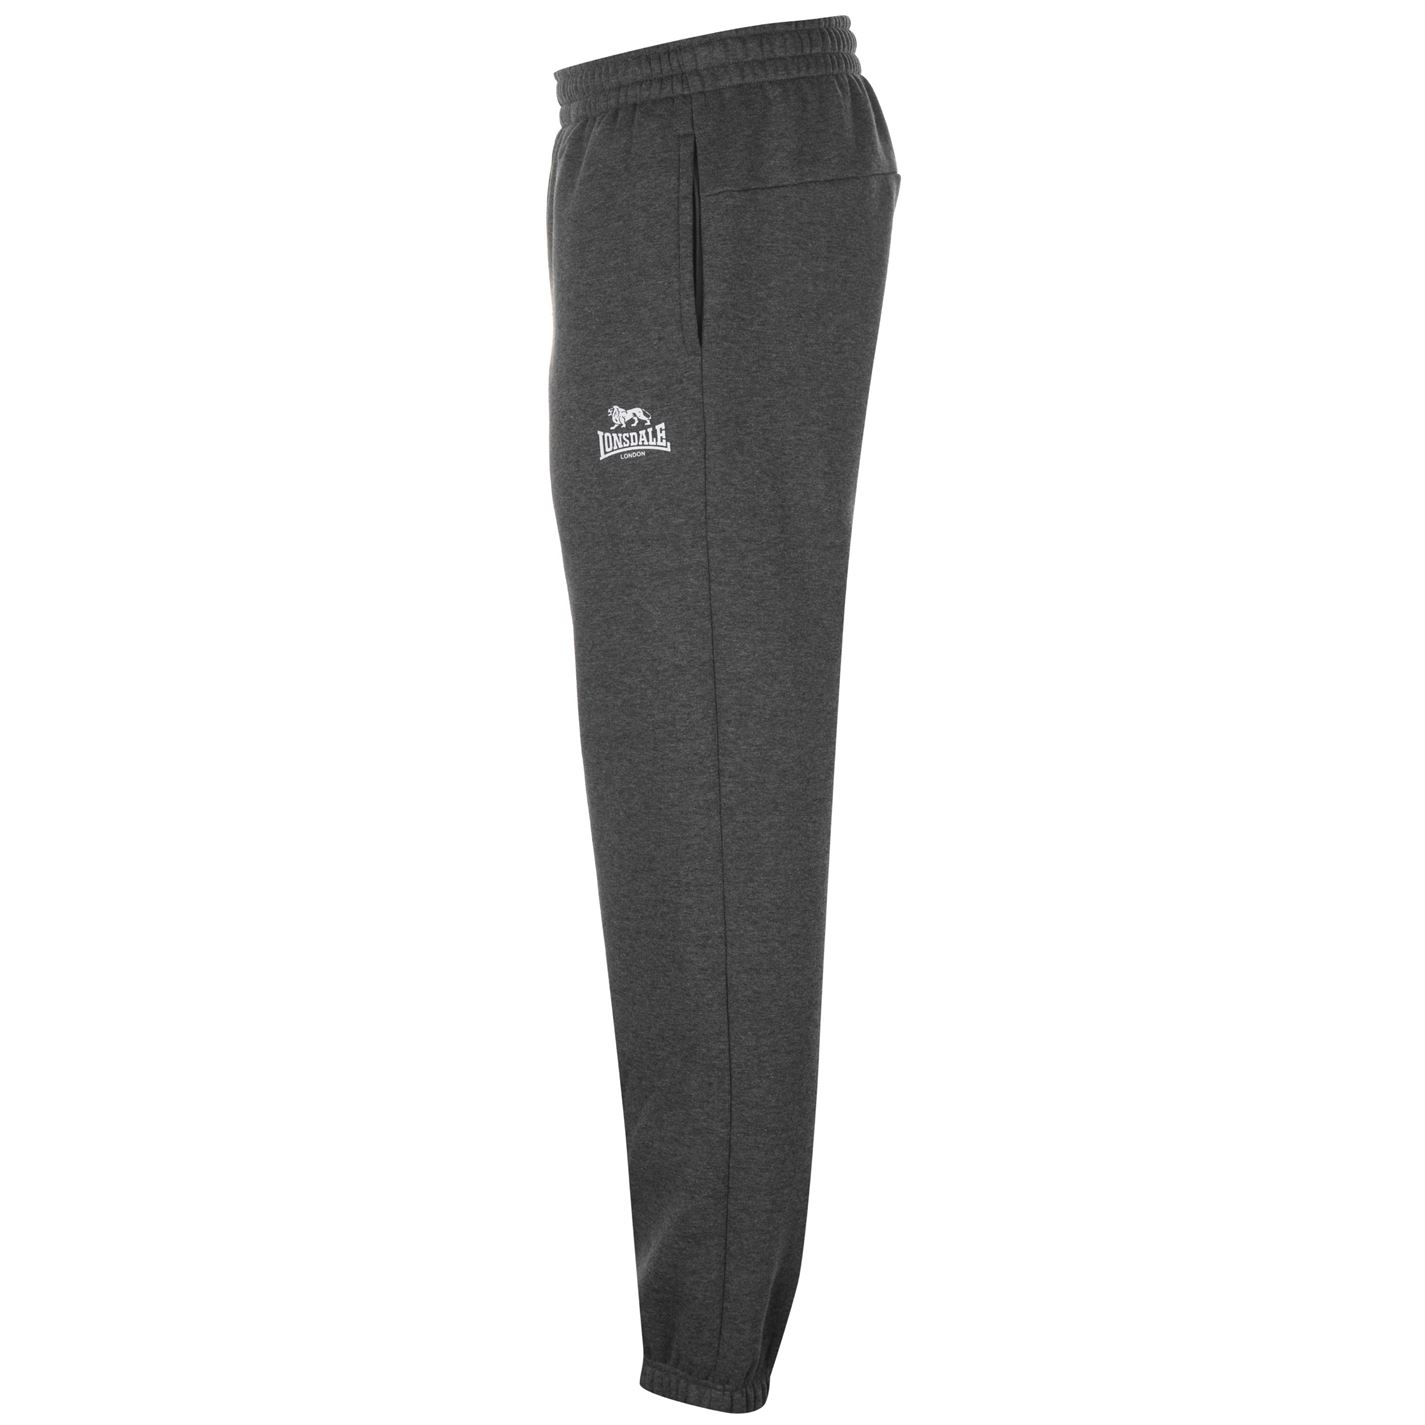 Lonsdale Mens Boxing Sweatpants Jogging Bottoms Trousers 3 Pockets Clothing Wear